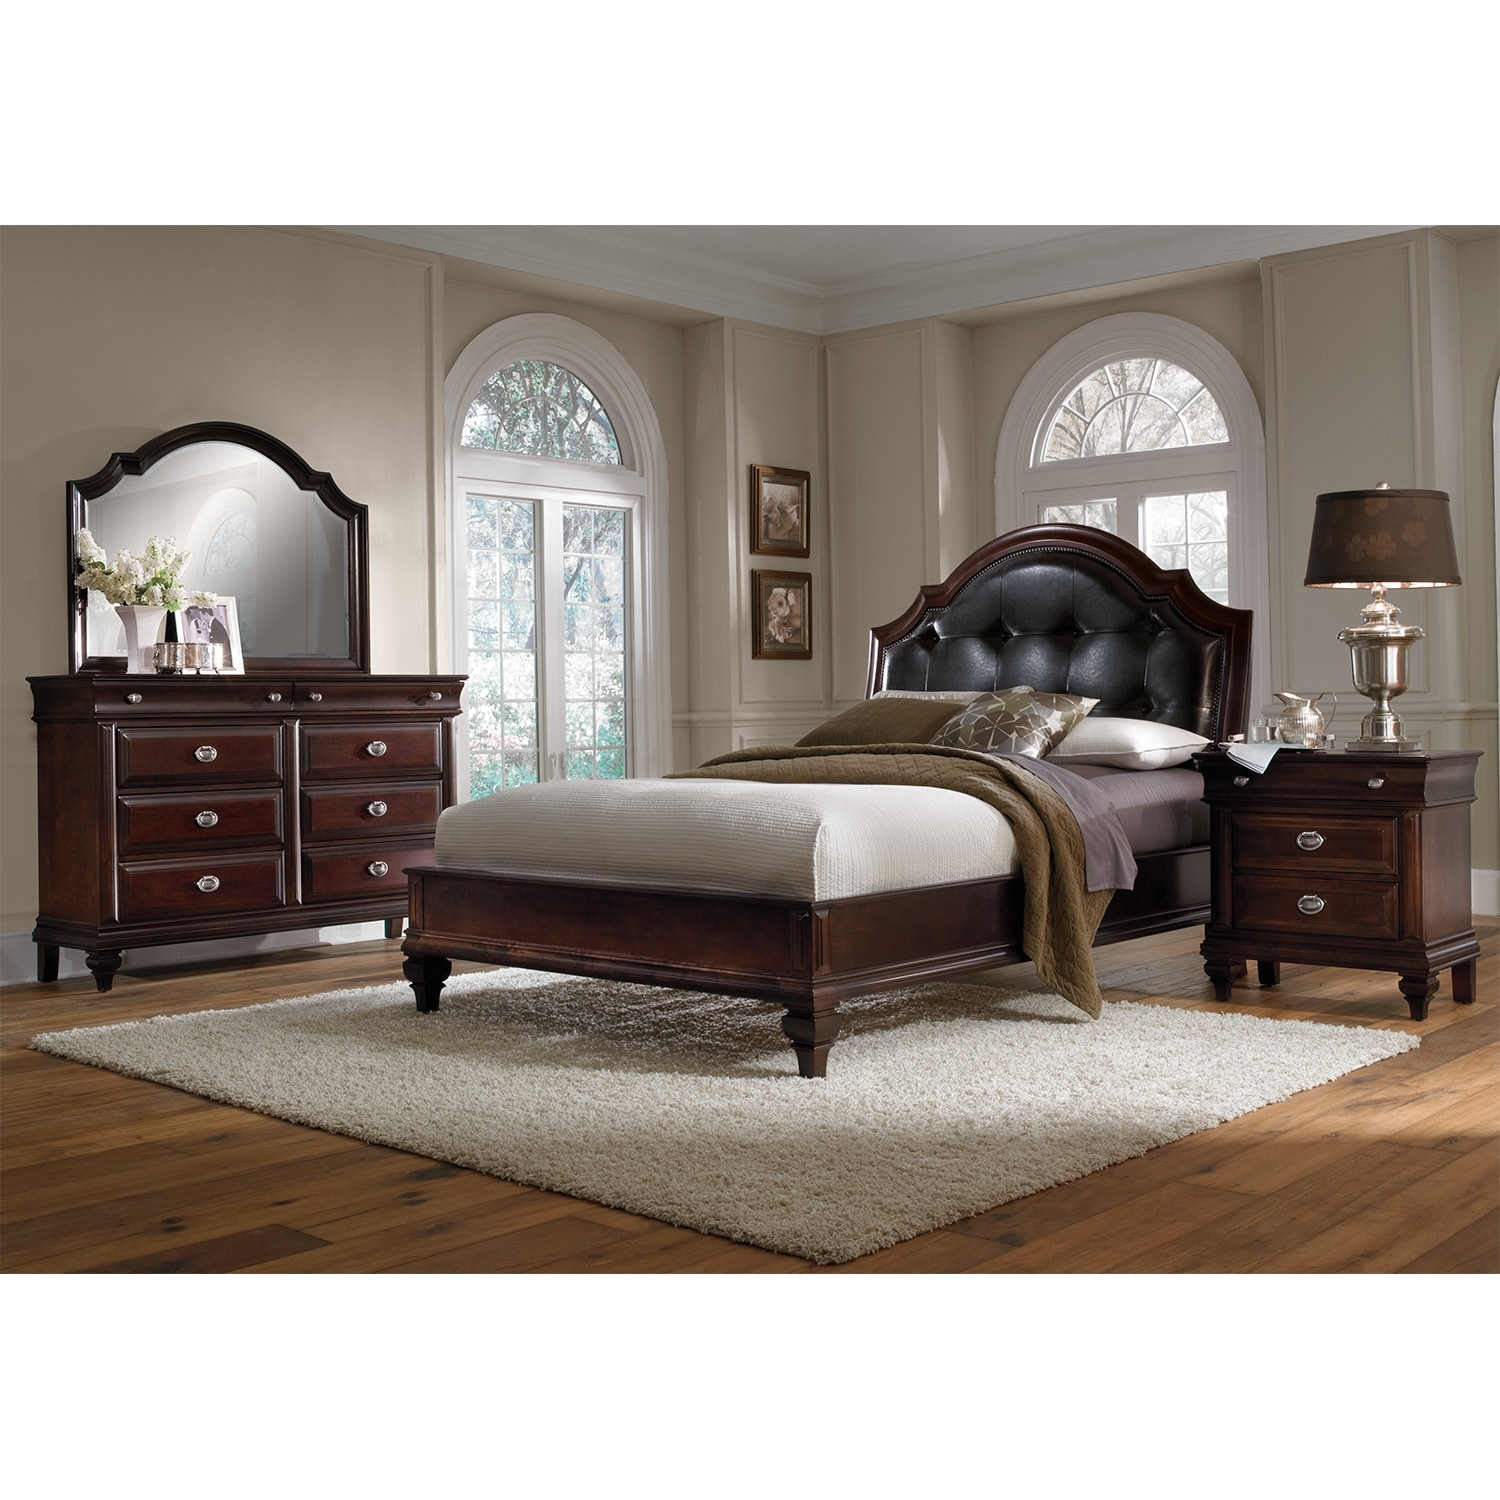 Manhattan 6-Piece Queen Bedroom Set - Cherry | Value City ...